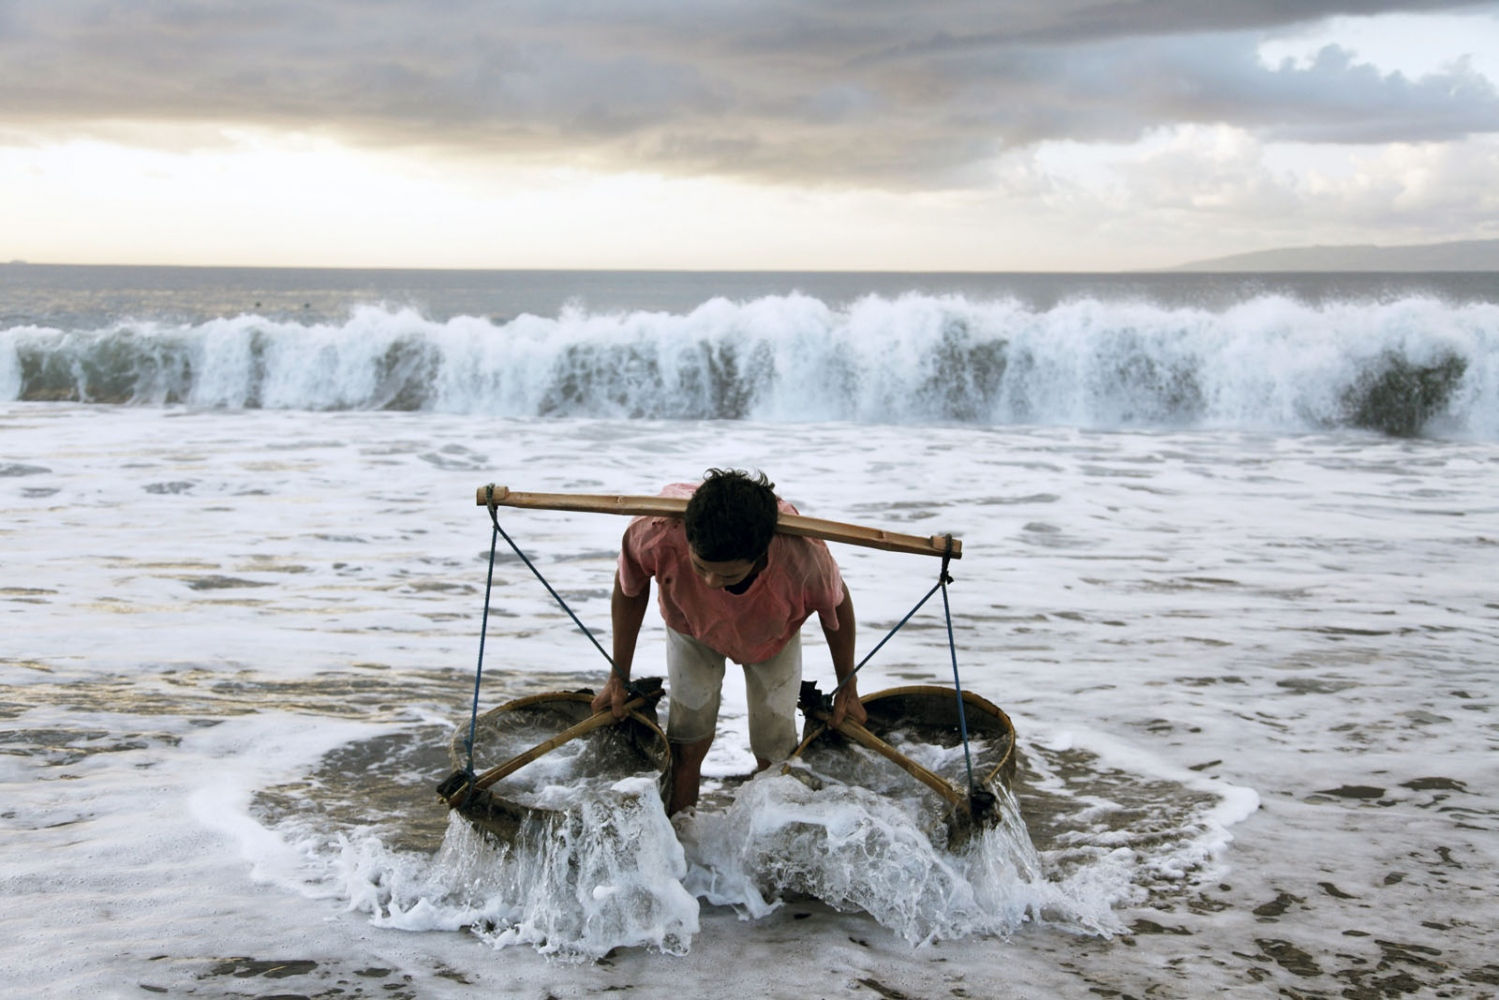 Art and Documentary Photography - Loading Bali_Seawater.jpg